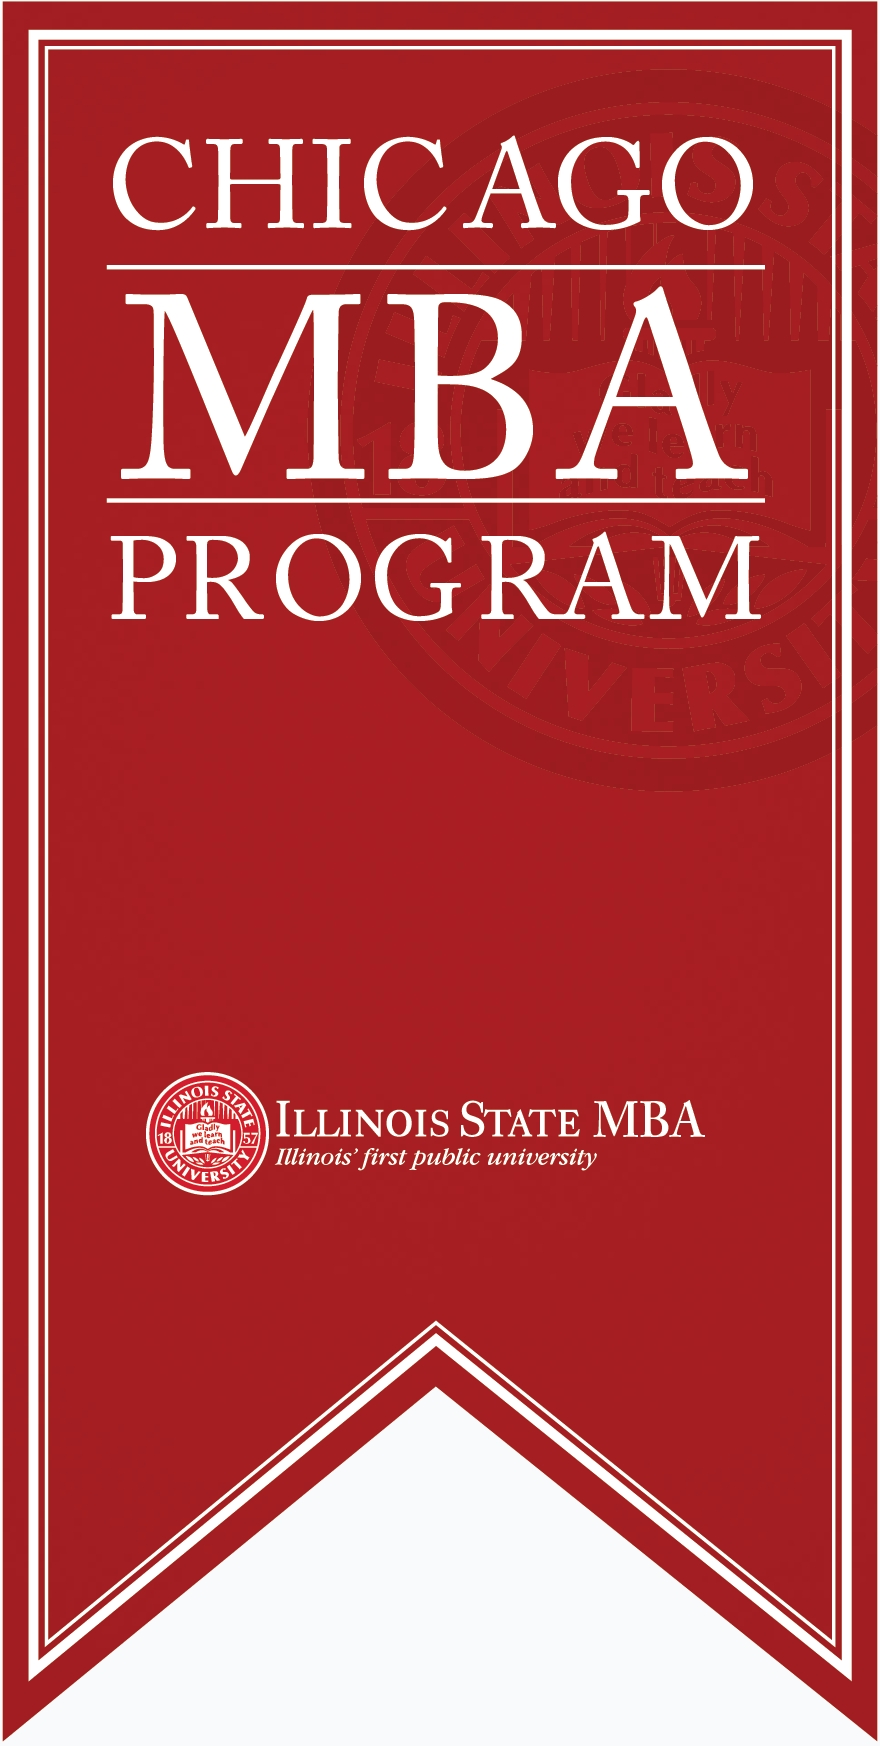 Chicago MBA Program